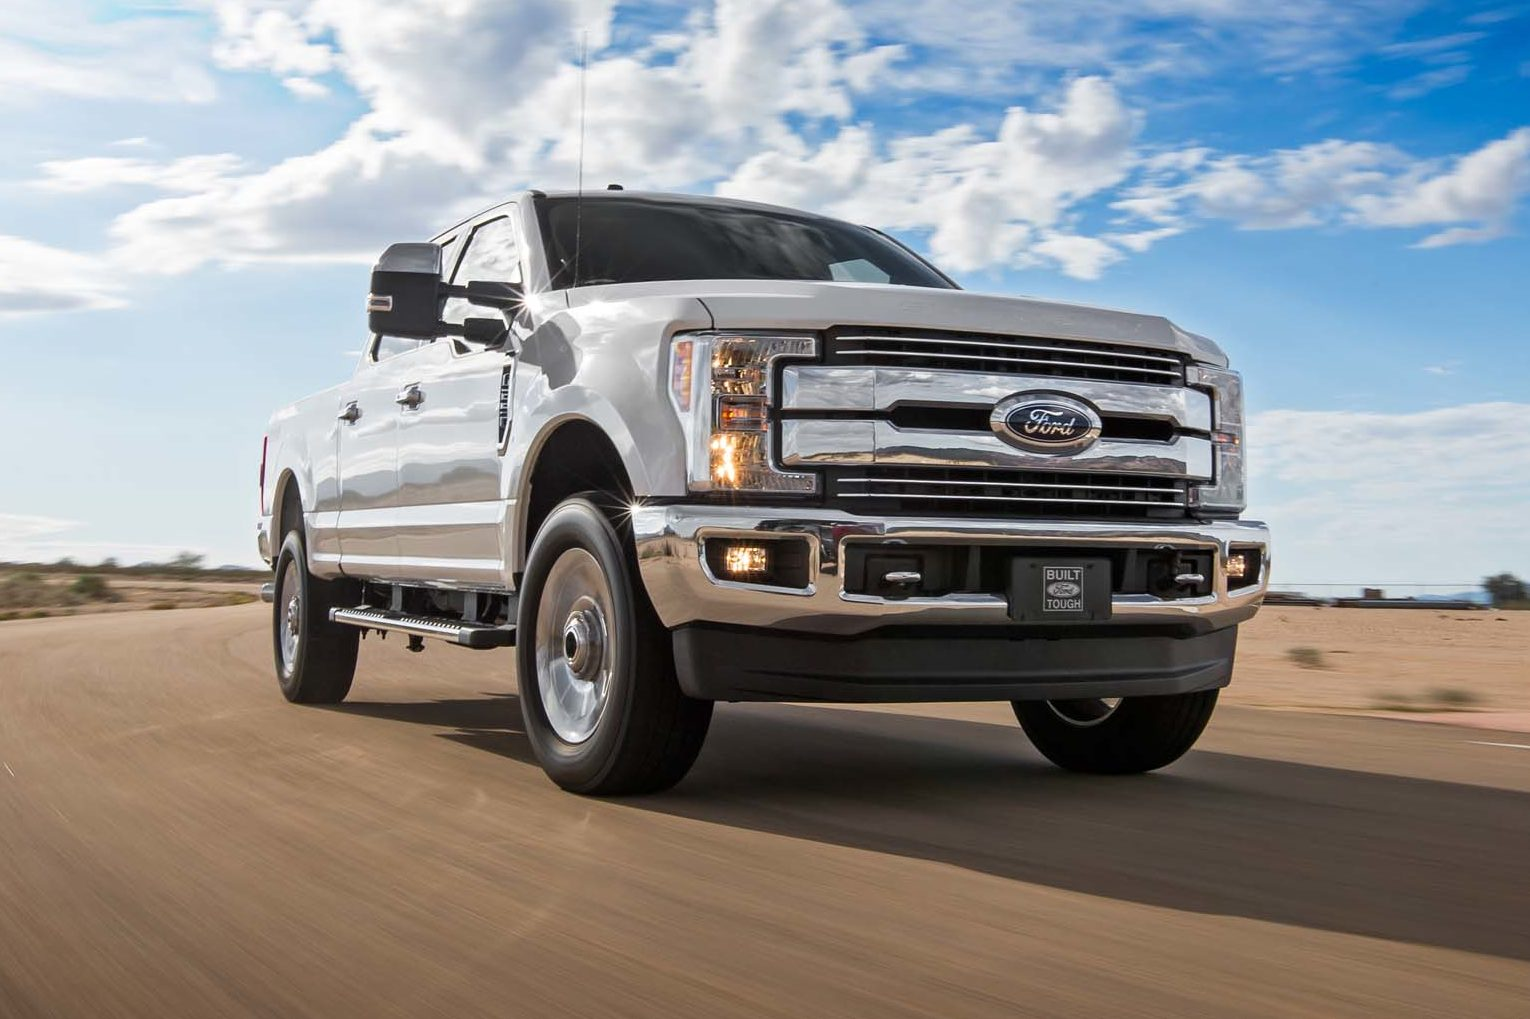 2017 Ford F 250 Lariat 4x4 Front Three Quarter In Motion 02 E1477956233305